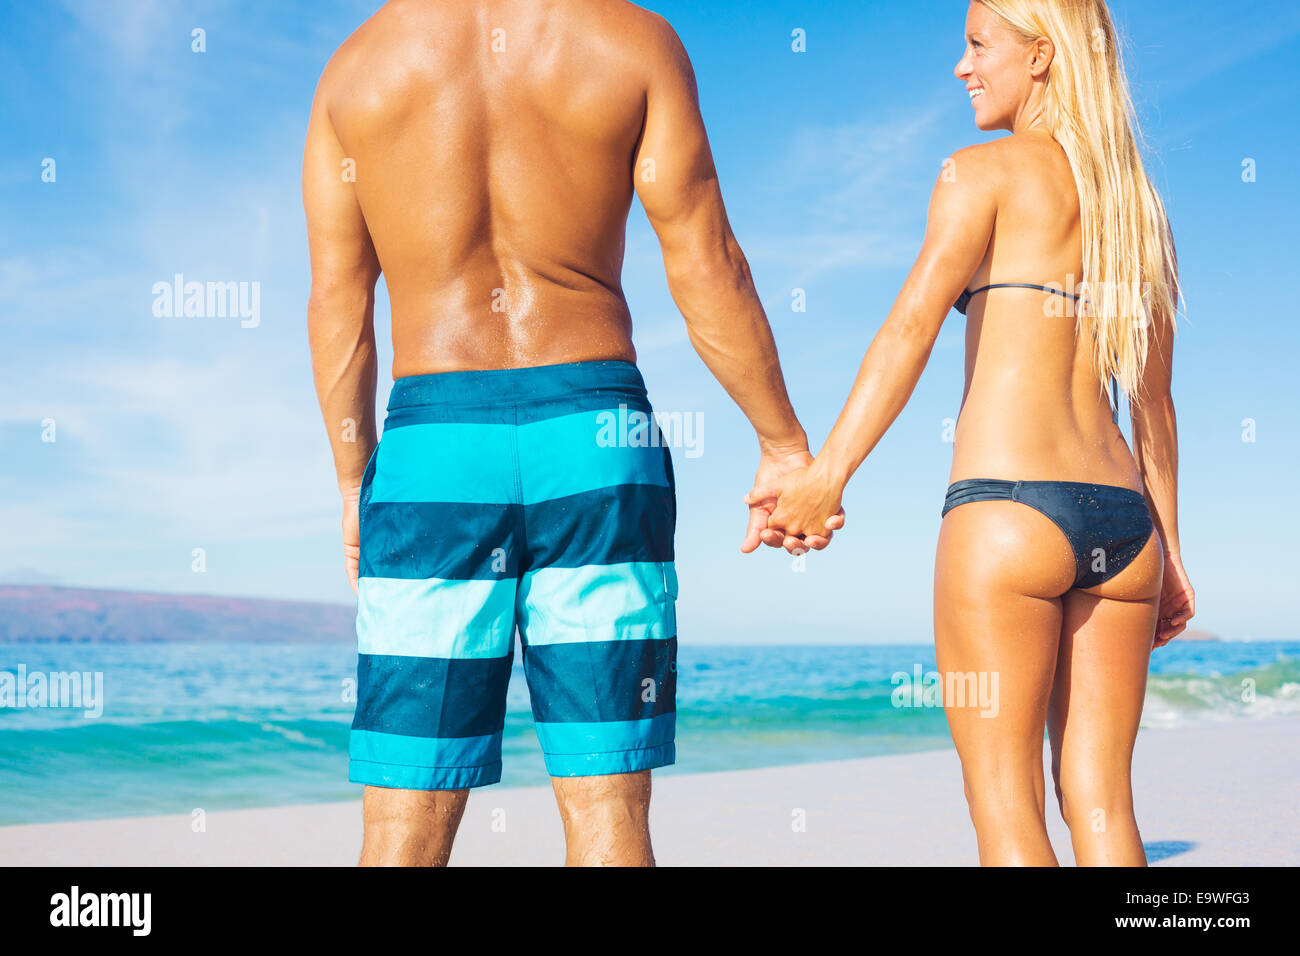 Attractive Couple on Sunny Tropical Beach Vacation - Stock Image